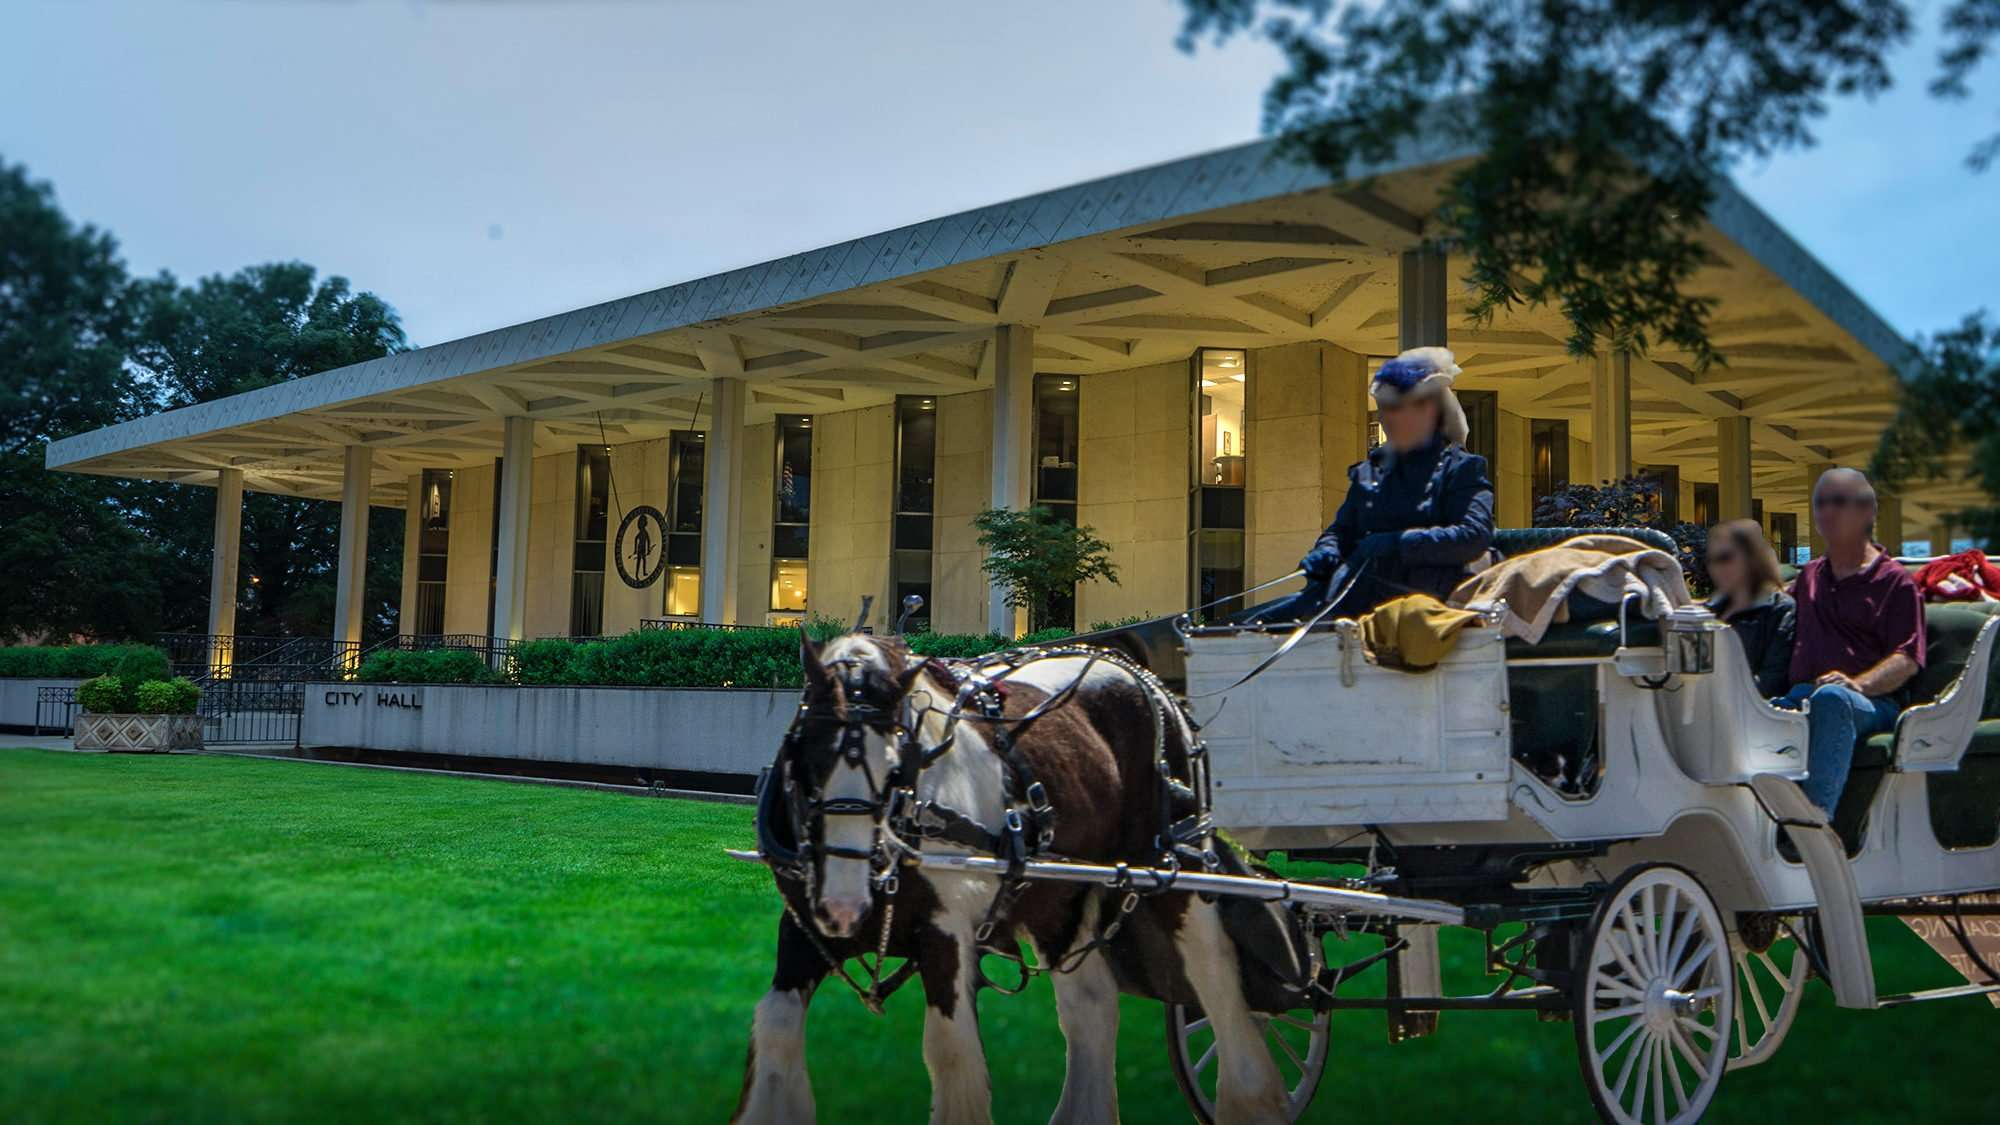 May 2017 - Horse and buggy from downtown composed on Paducah City Hall lawn /photonews247.com